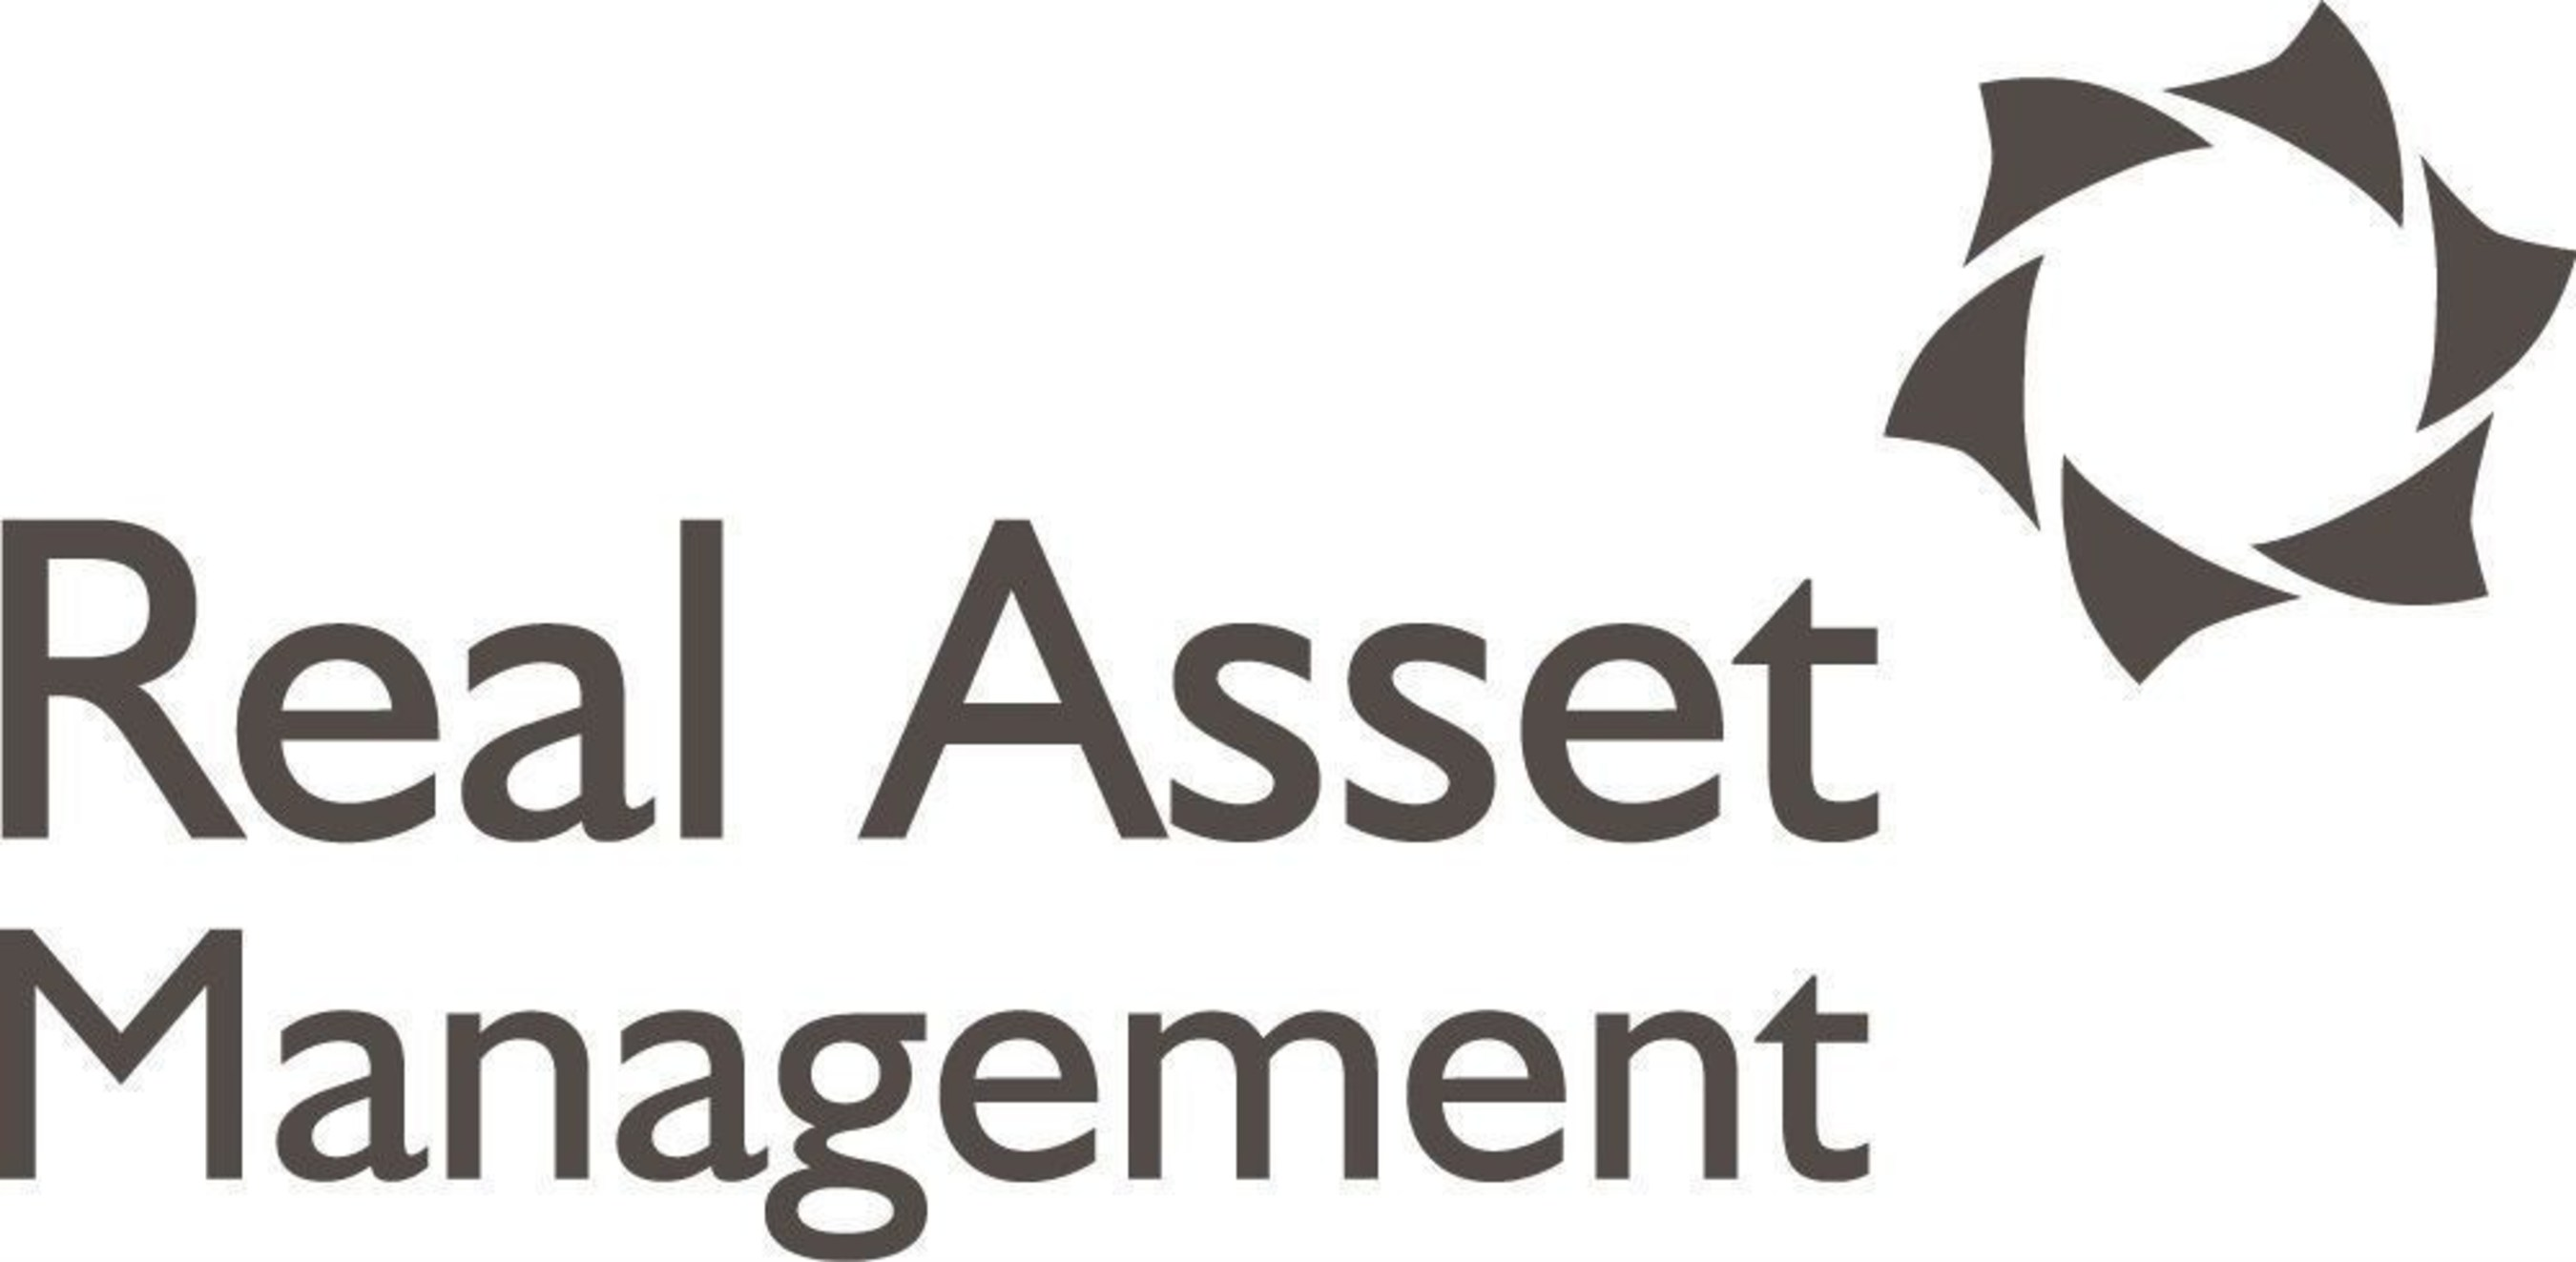 Rick Stein Group Selects Real Asset Management's Maintenance Management Solution to Optimise Work Scheduling